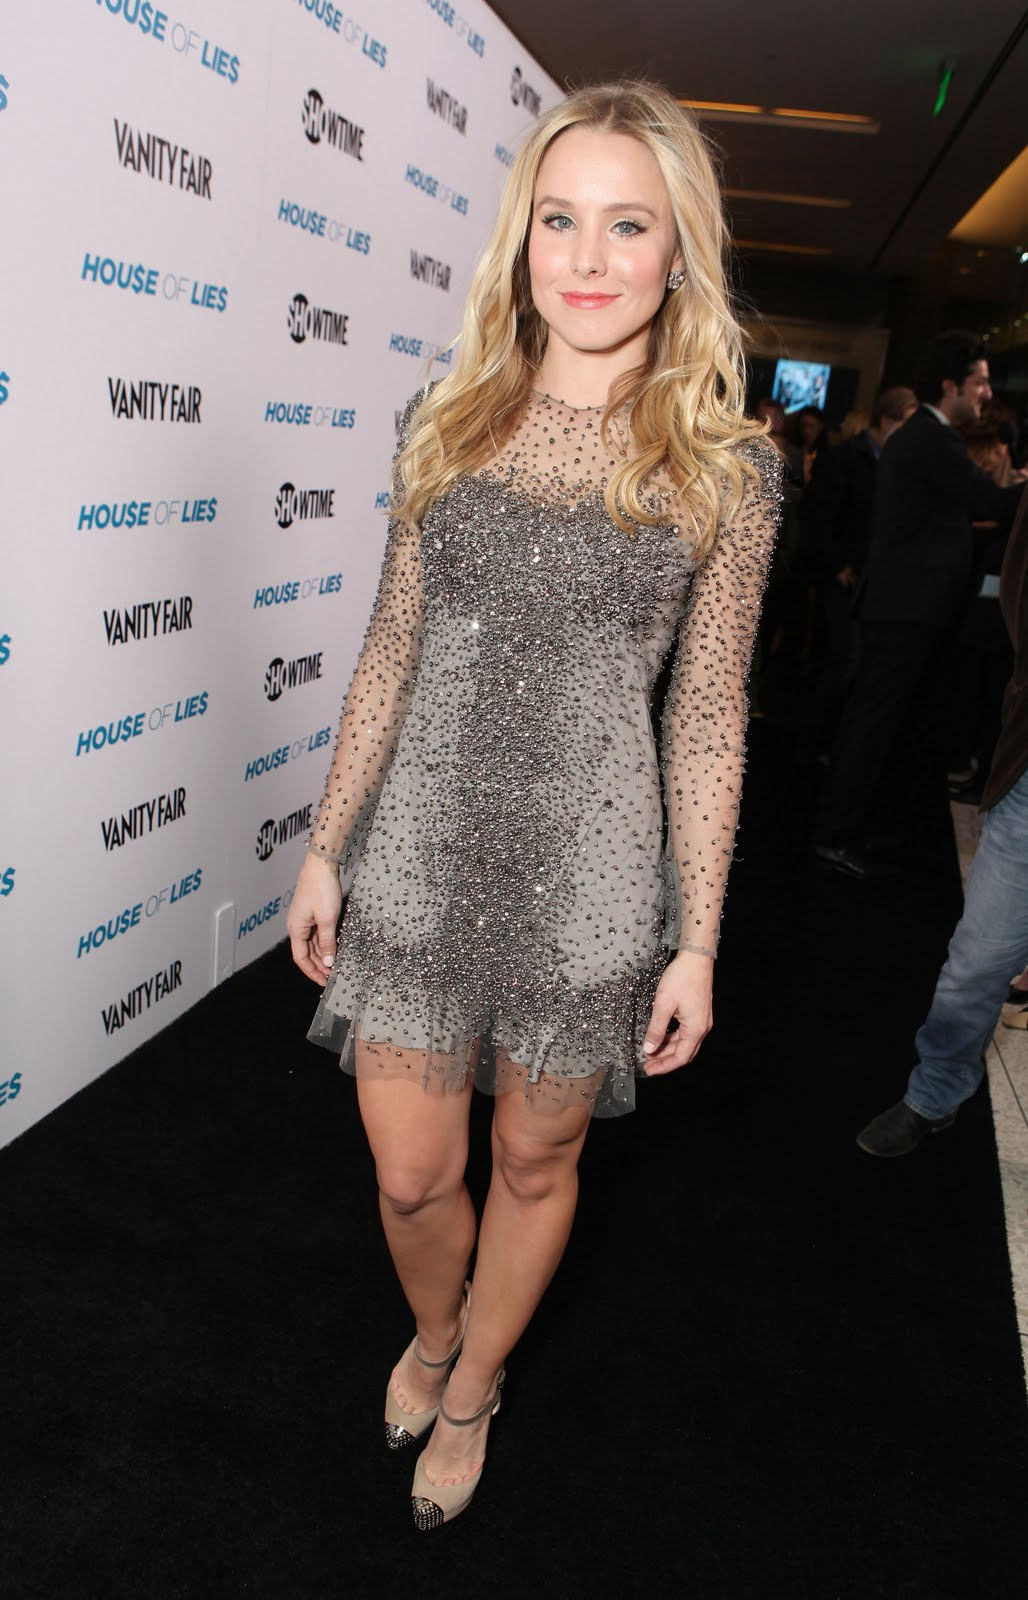 http://2.bp.blogspot.com/-H2y0TEcOdR8/Tw8GYYibCbI/AAAAAAAANdw/r8MW0Mwwkl0/s1600/1%2B94376_Kristen_Bell_Showtime_s_House_of_Lies_private_party_and_premiere_in_LA_January_4_2012_005_122_194lo.jpg